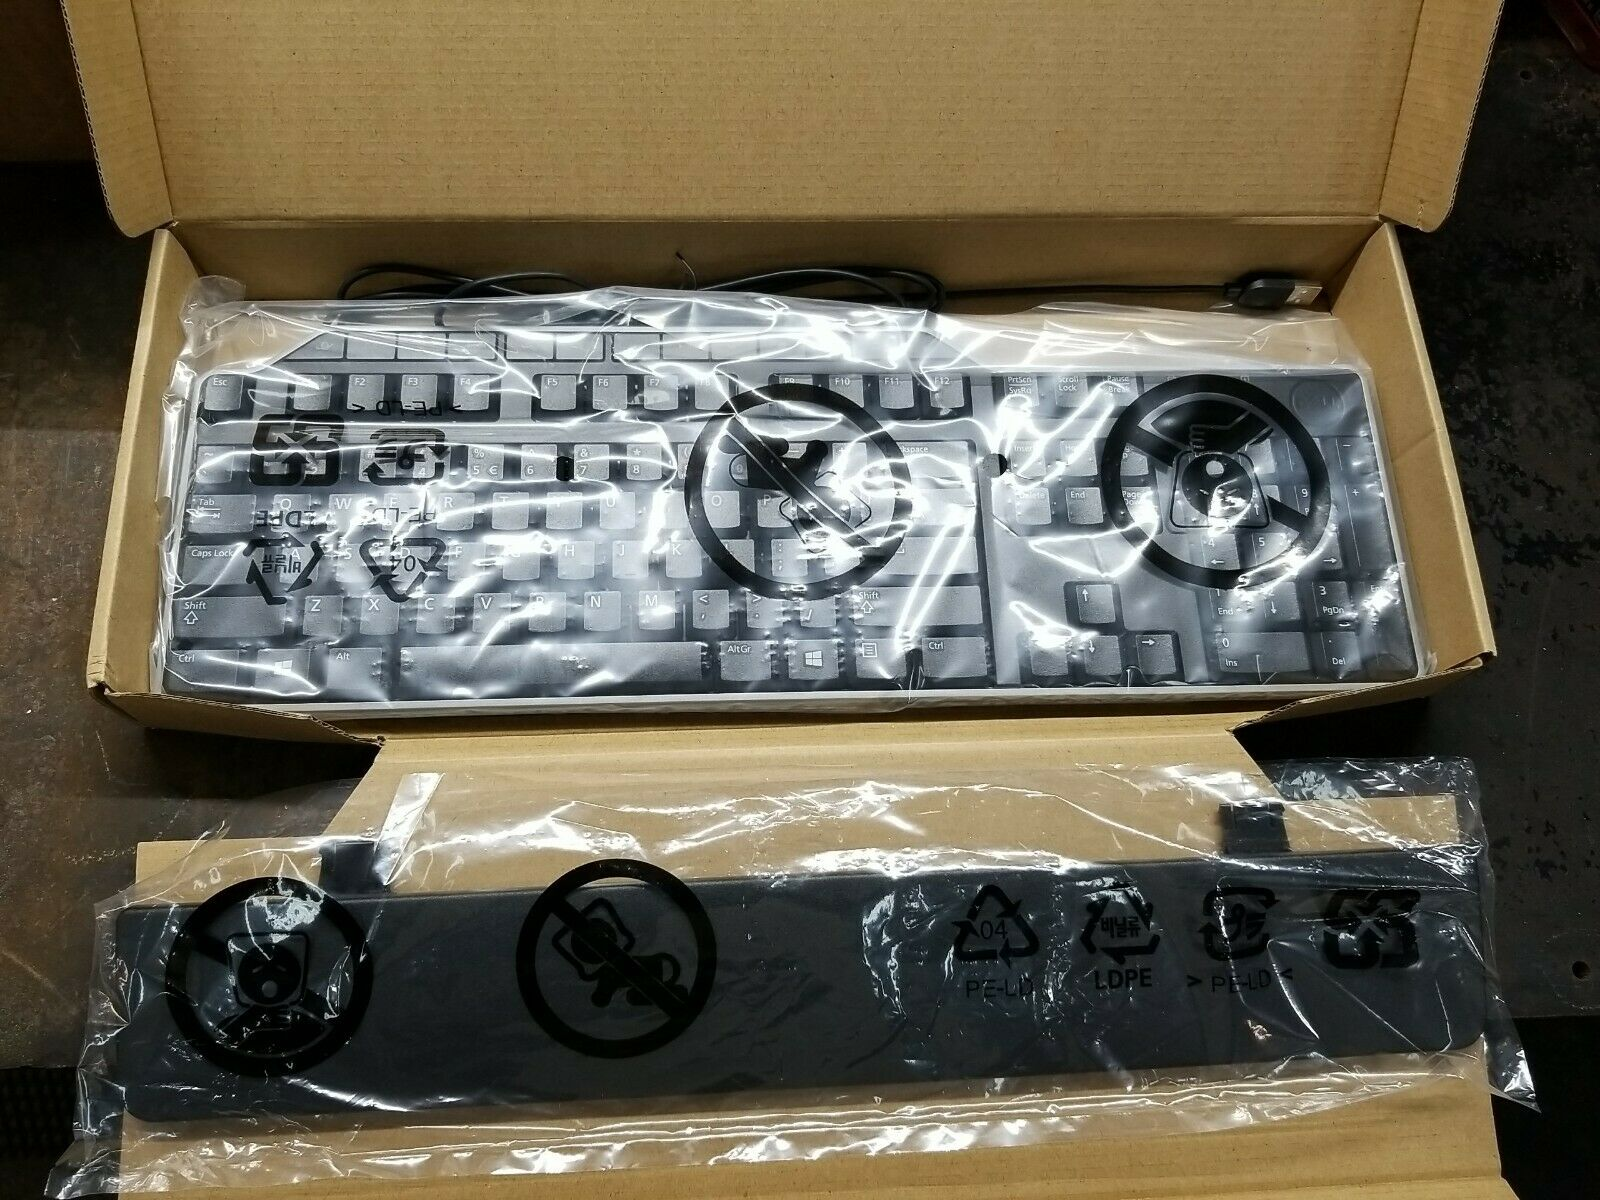 DELL KB522 US ENGLISH MULTIMEDIA SLIM USB WIRED DESKTOP KEYBOARD BLACK **NEW**. Buy it now for 20.00